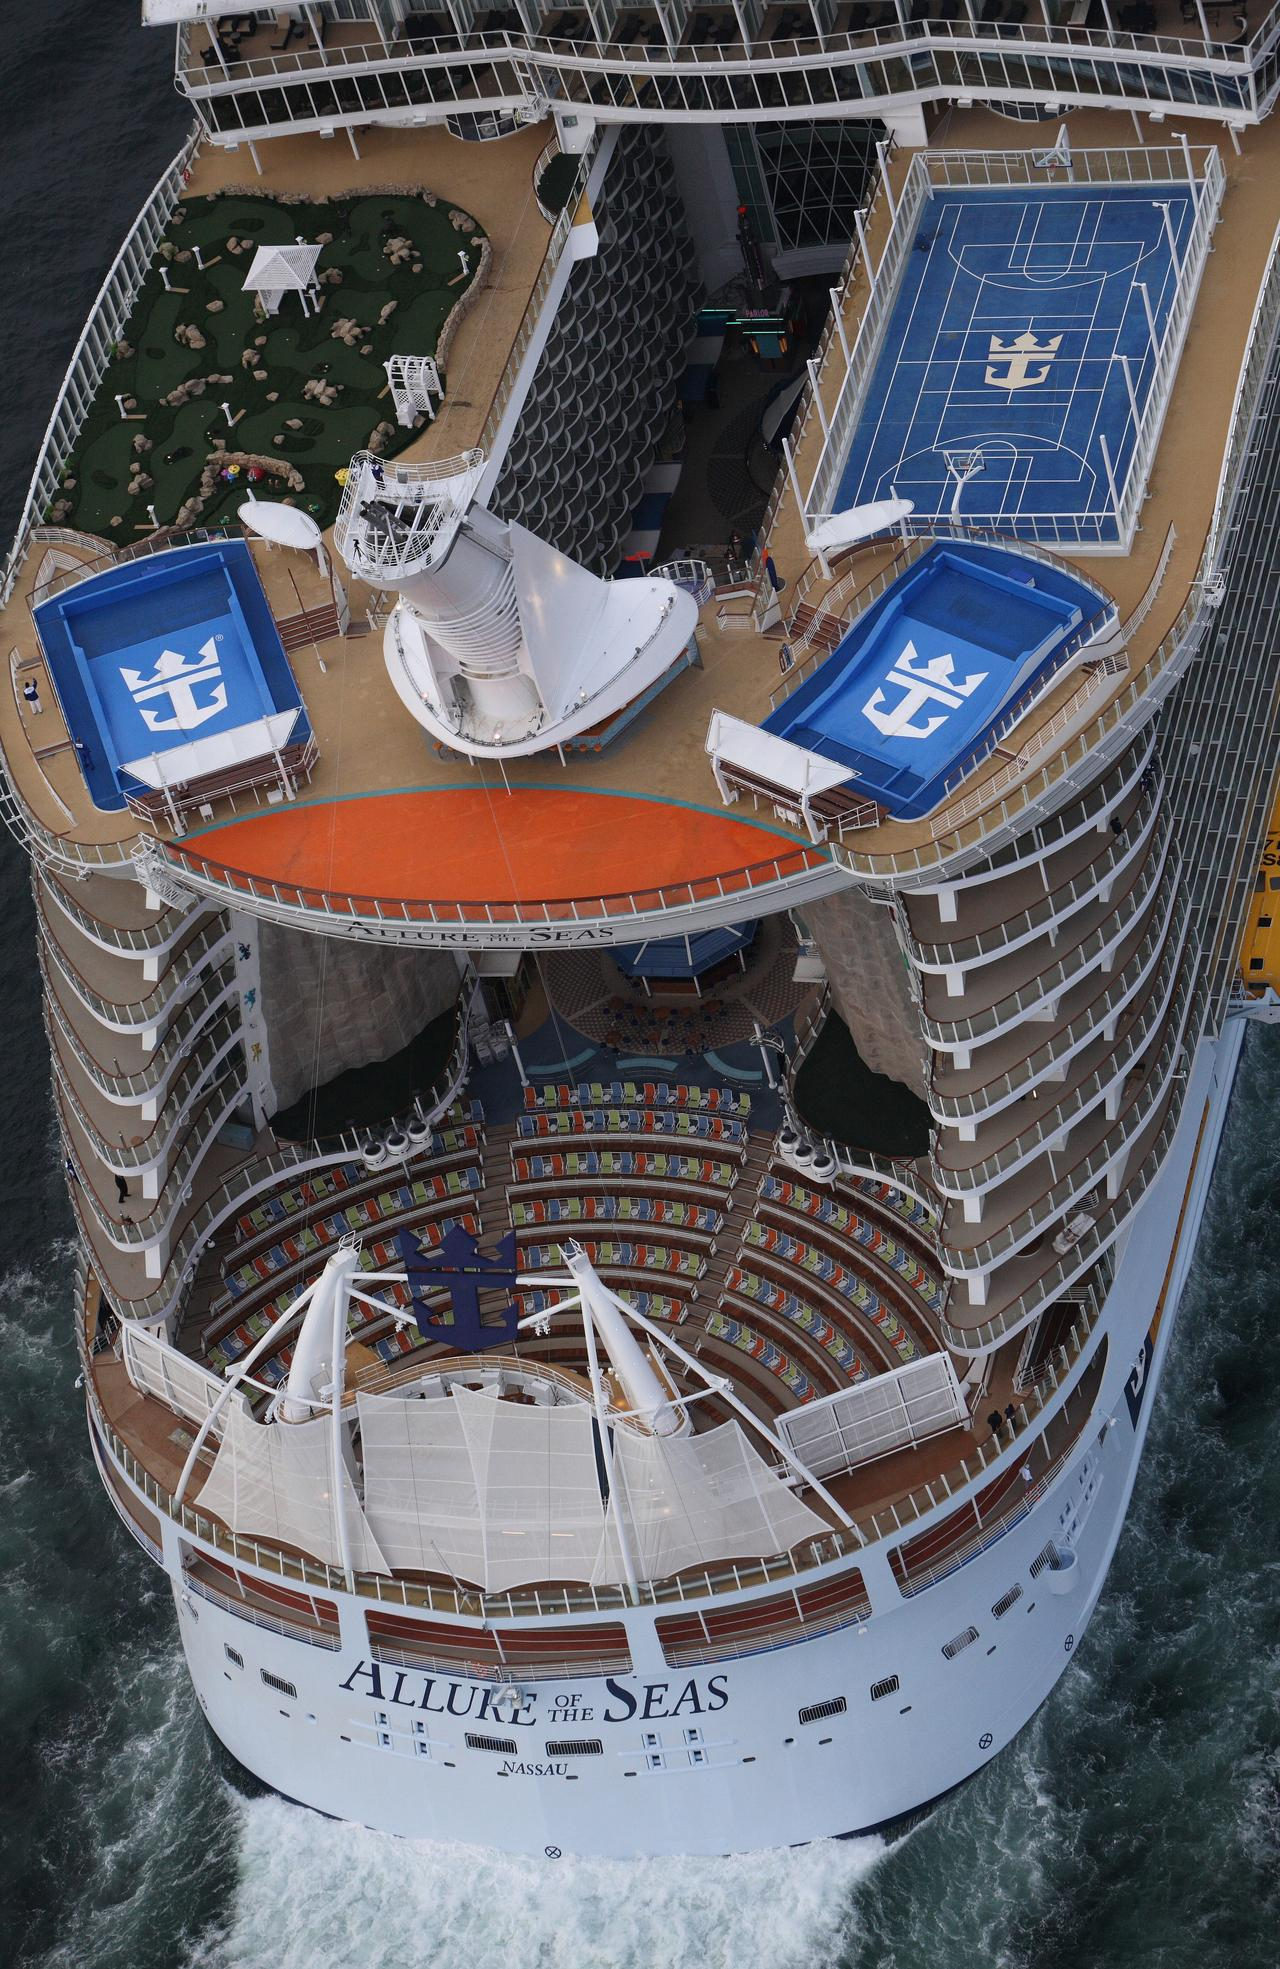 Why the captain of the world's biggest cruise ship, Allure